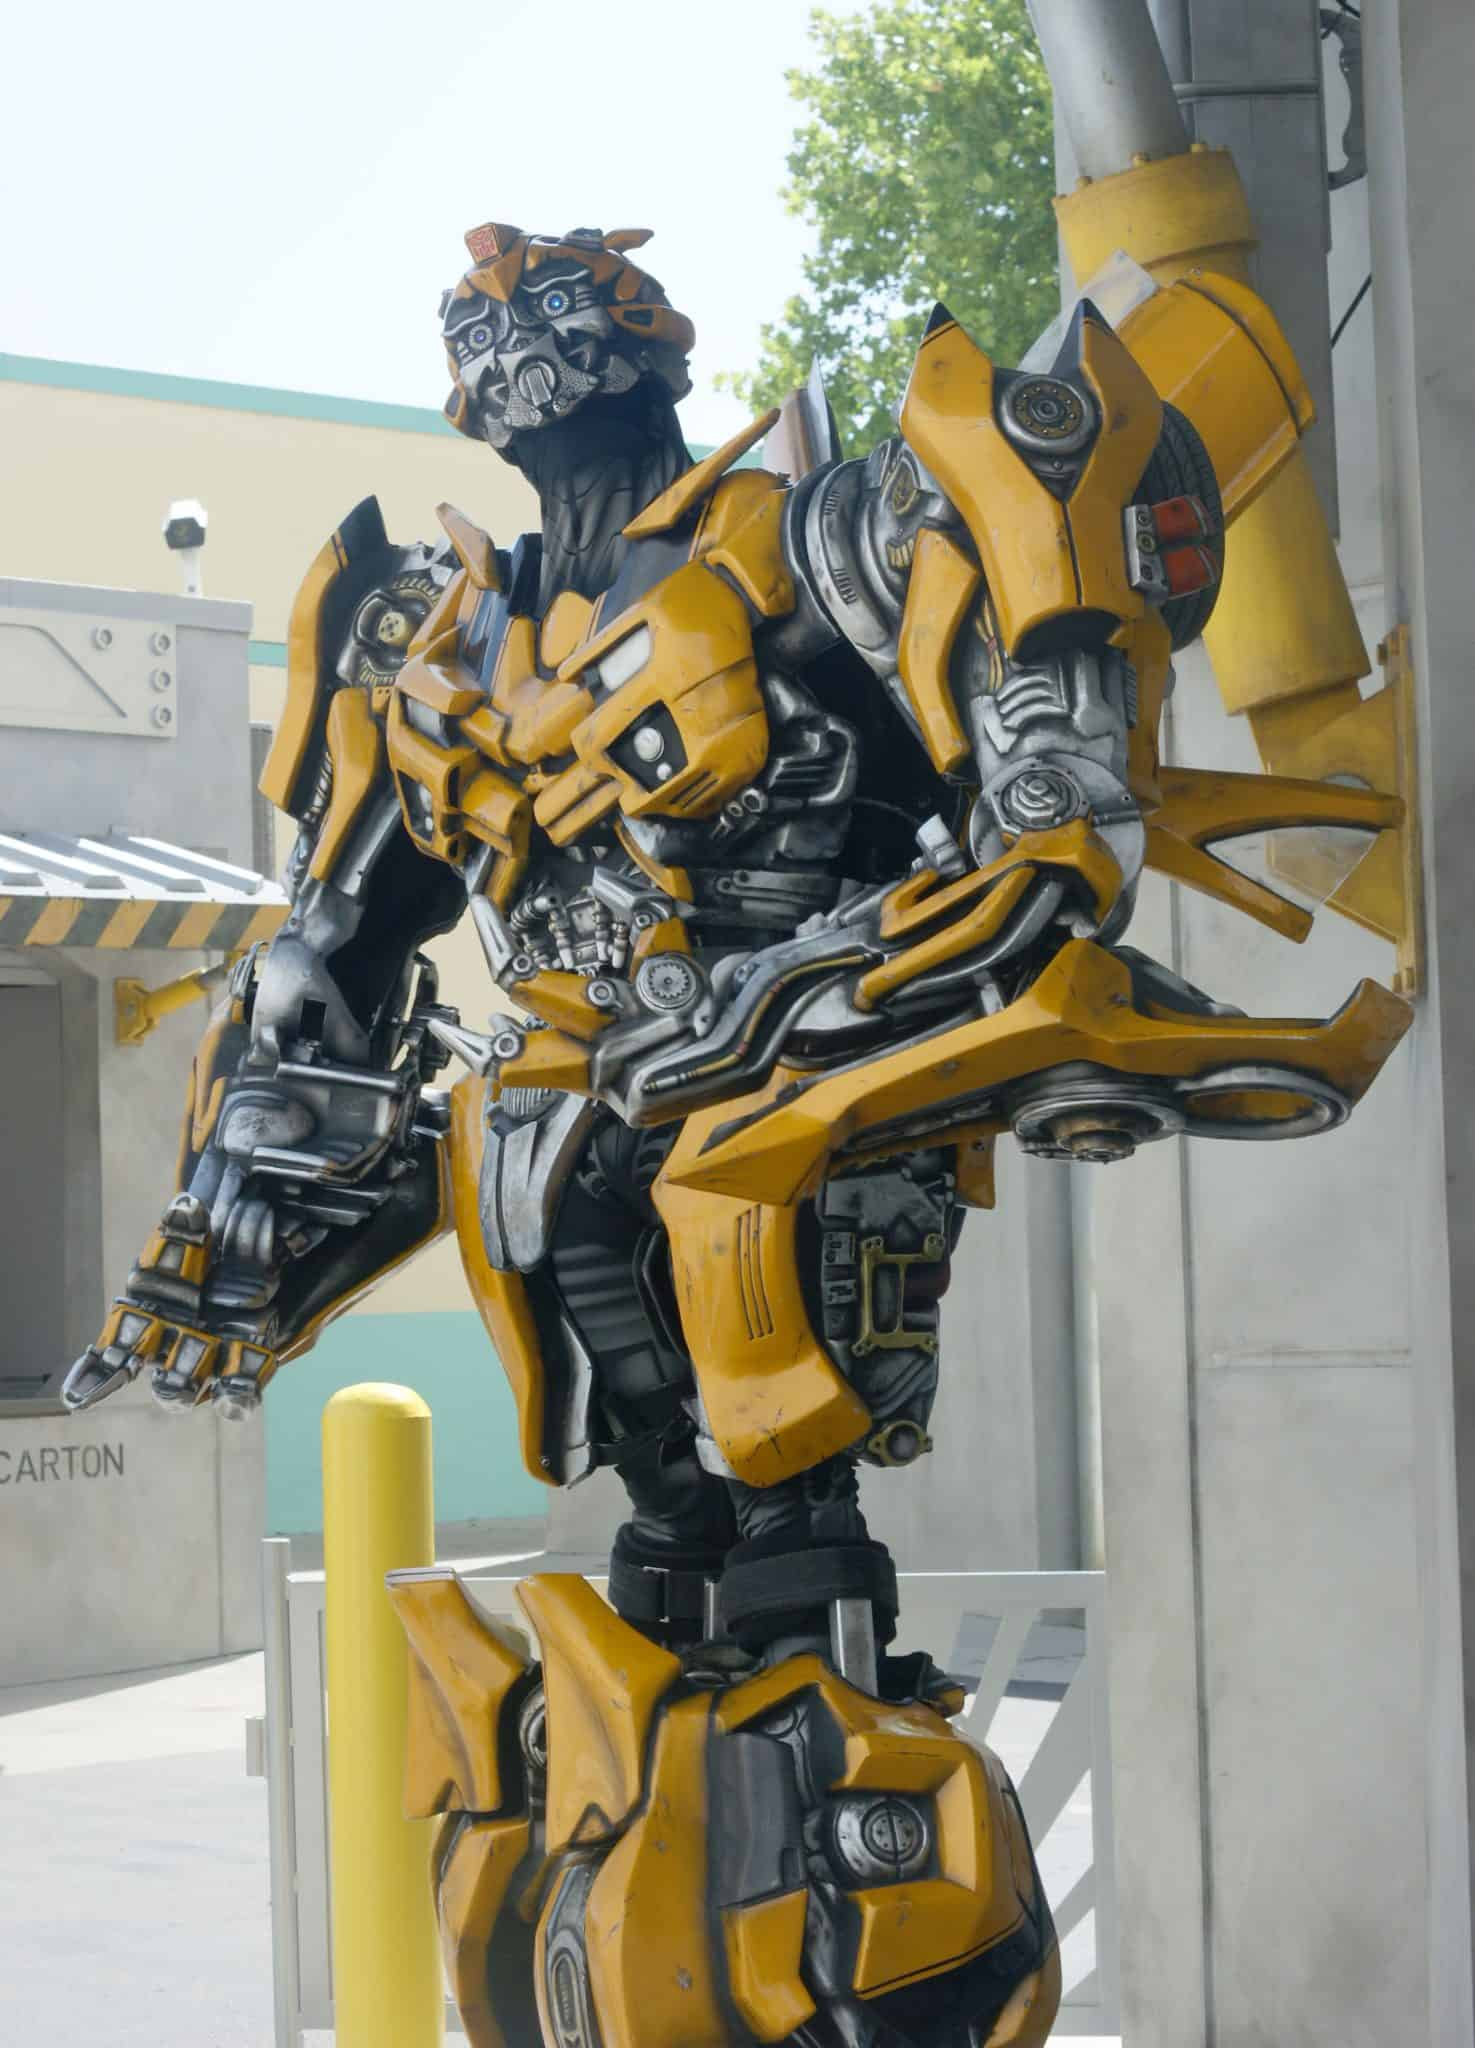 Bumblebee -10 Things I didn't know about Universal Studios Orlando - Tips for visiting Universal Studios Orlando and enjoying Diagon Alley - #UniversalStudios #DiagonAlley #Travel #Florida #orlando #Universal #Transformers